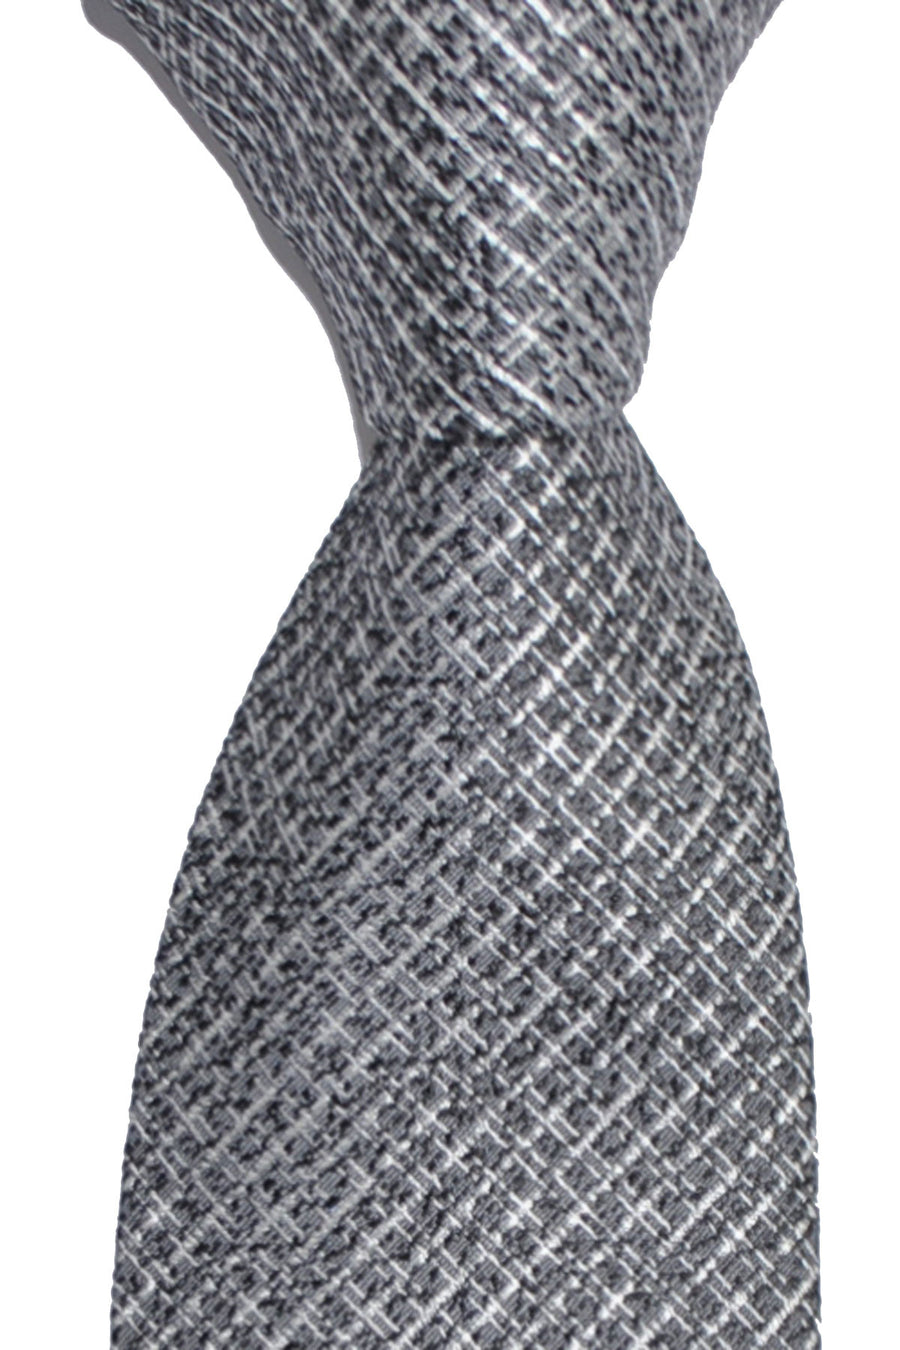 Tom Ford Tie Charcoal Gray Silver